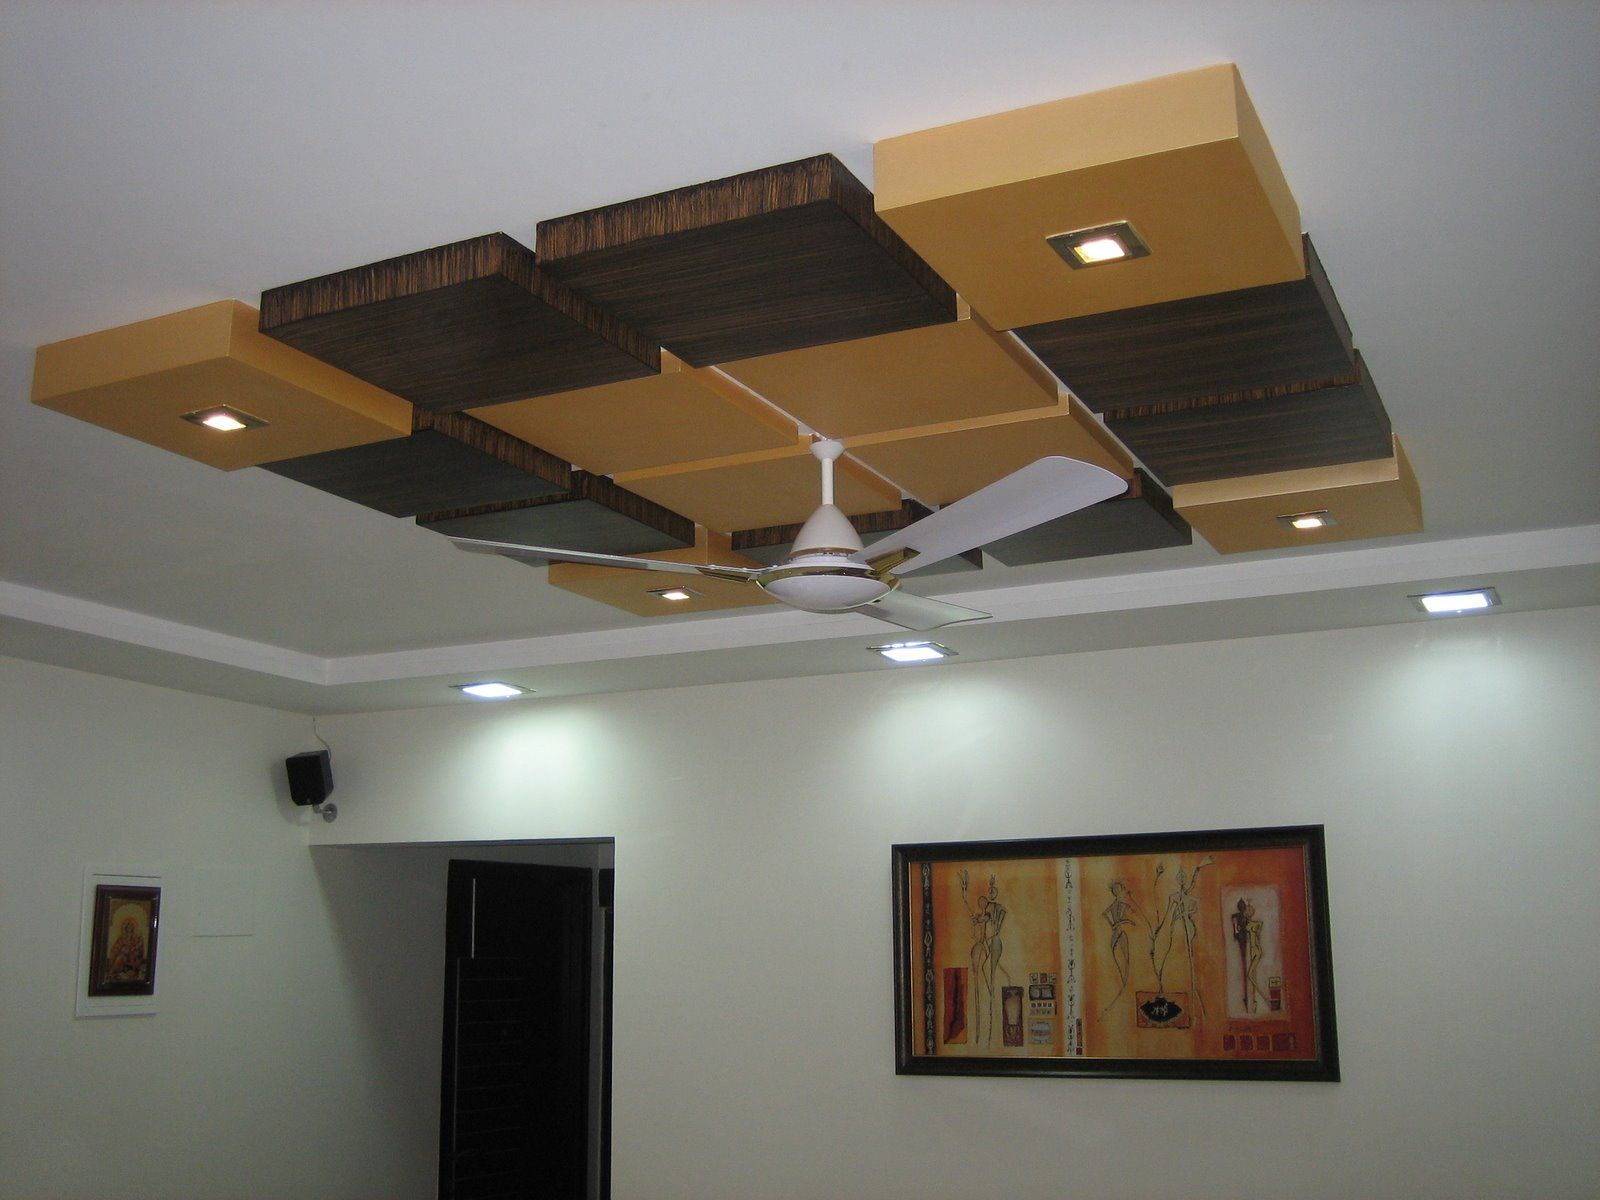 10 diy fancy and modern ceiling designs ceilings modern ceiling 10 diy fancy and modern ceiling designs easy diy and crafts dailygadgetfo Gallery